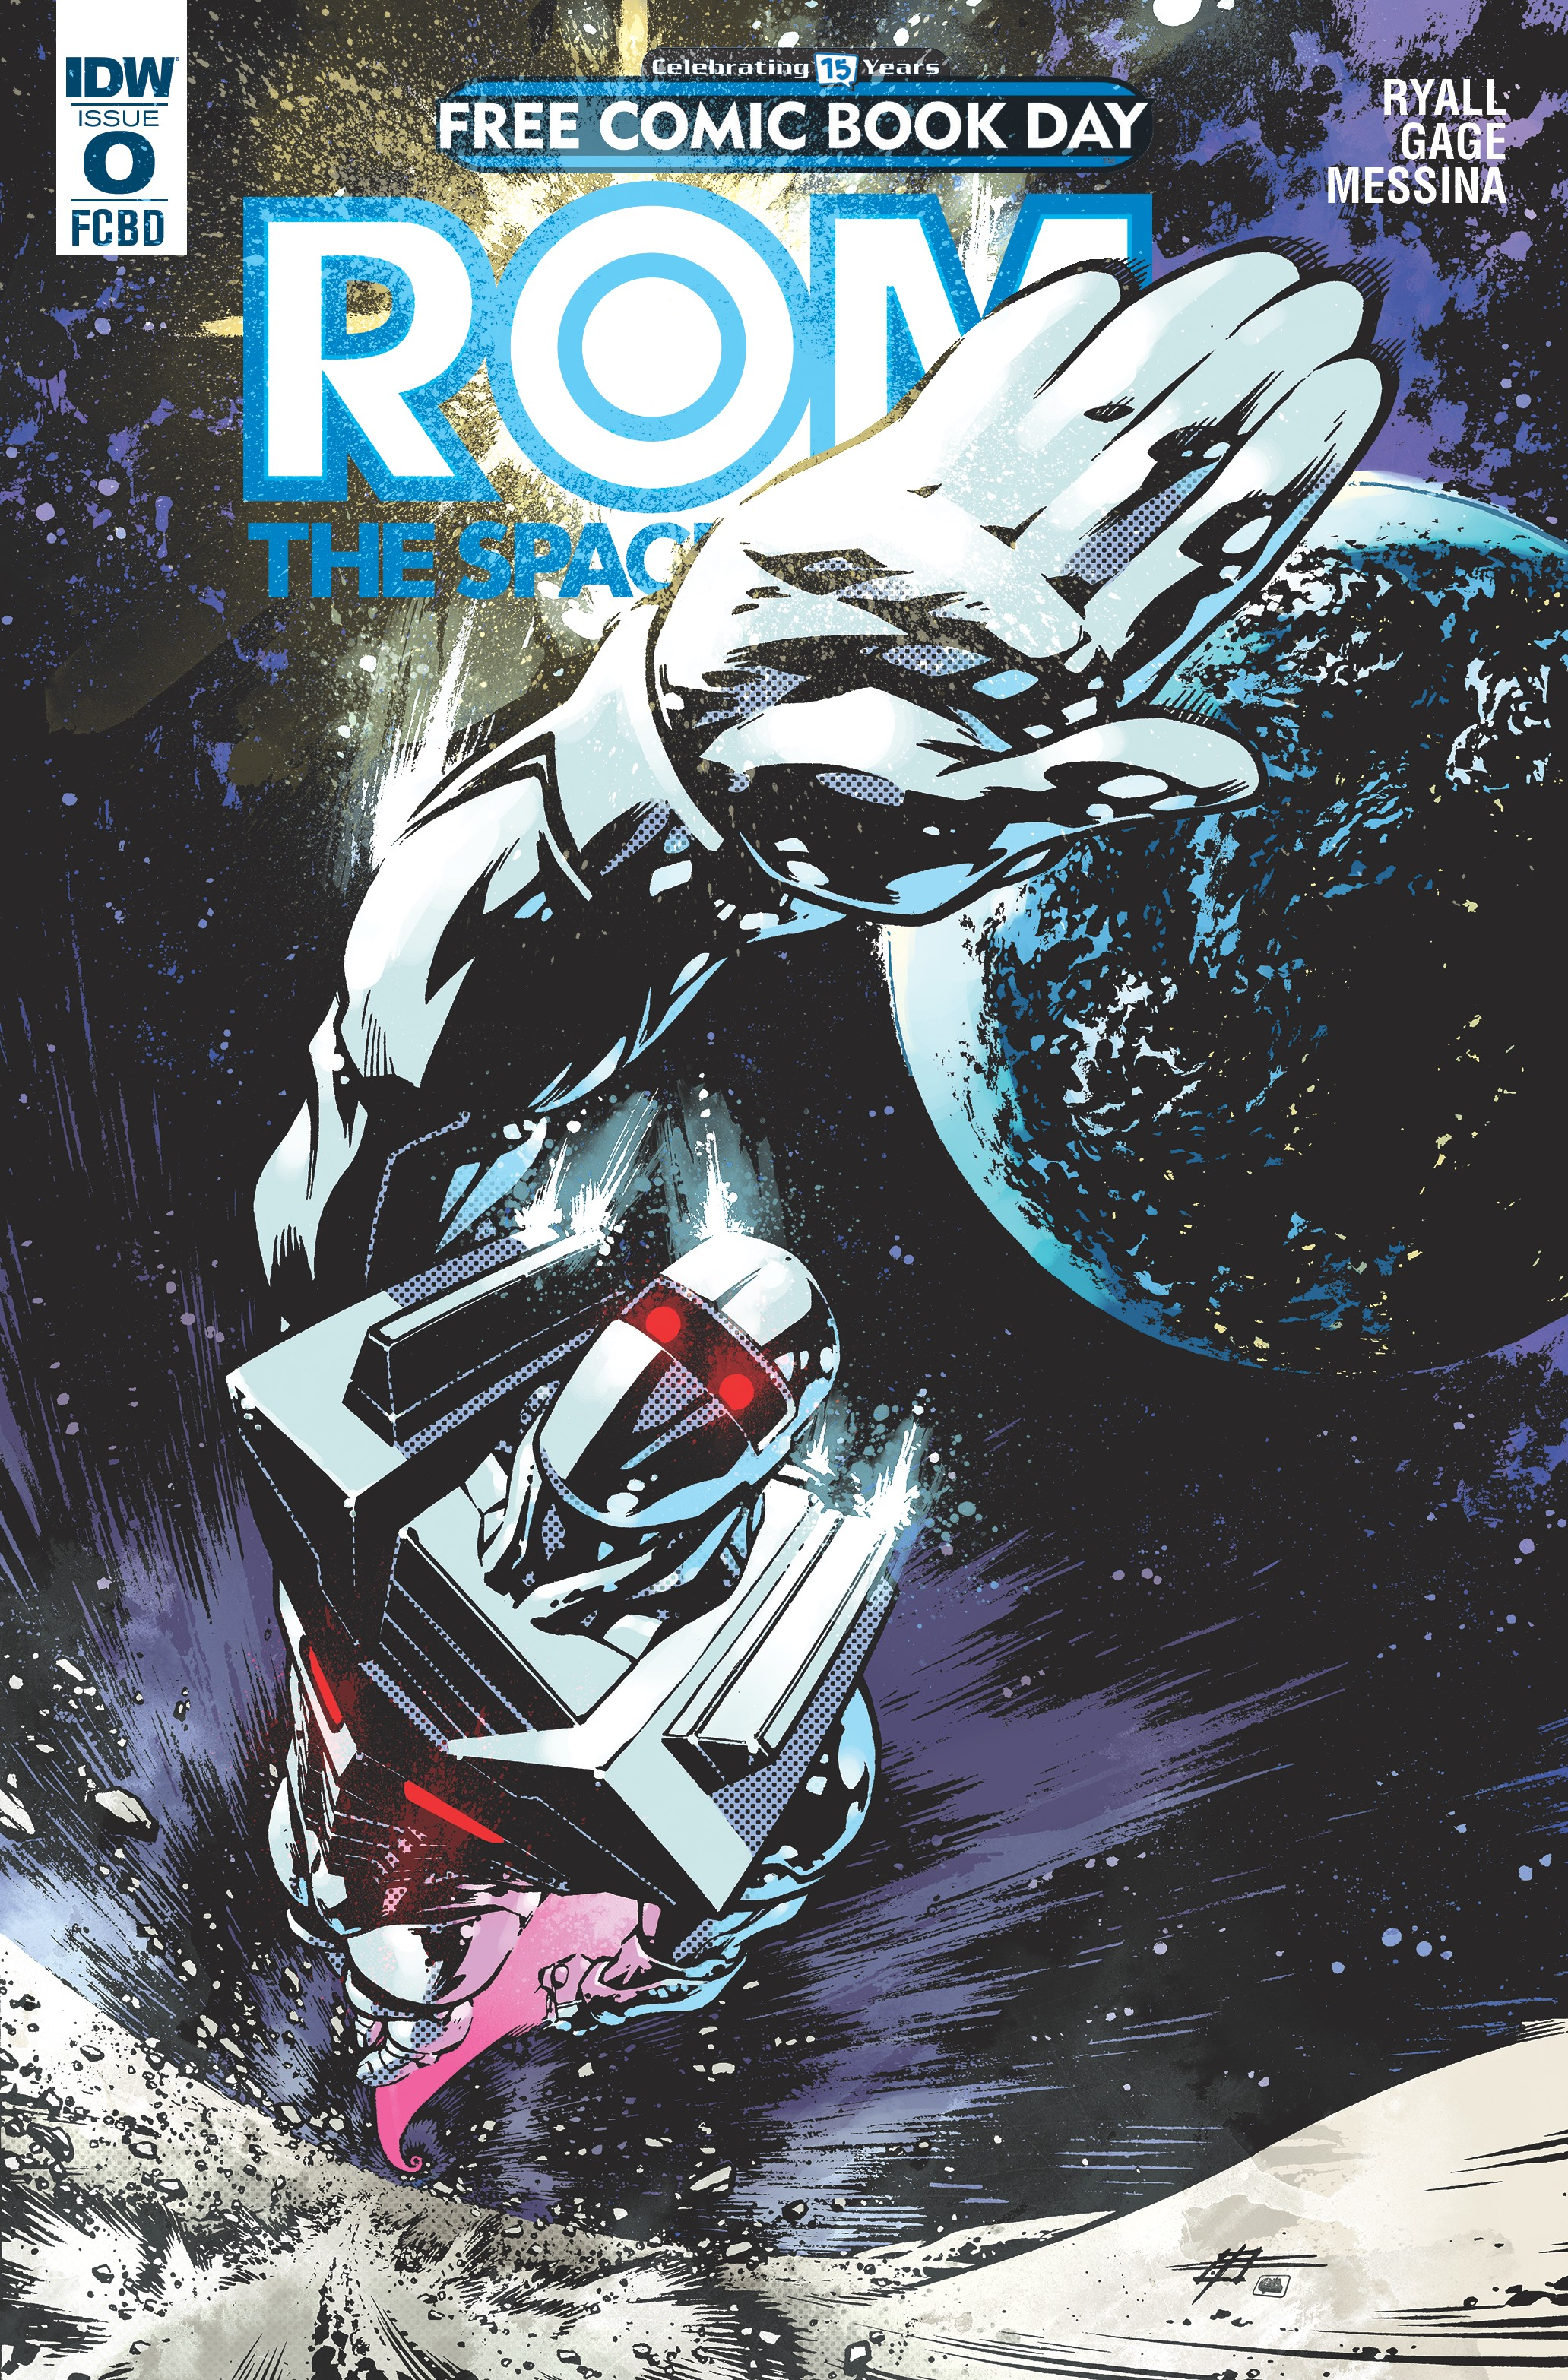 Rom the Space Knight Makes Triumphant Return to Comics!